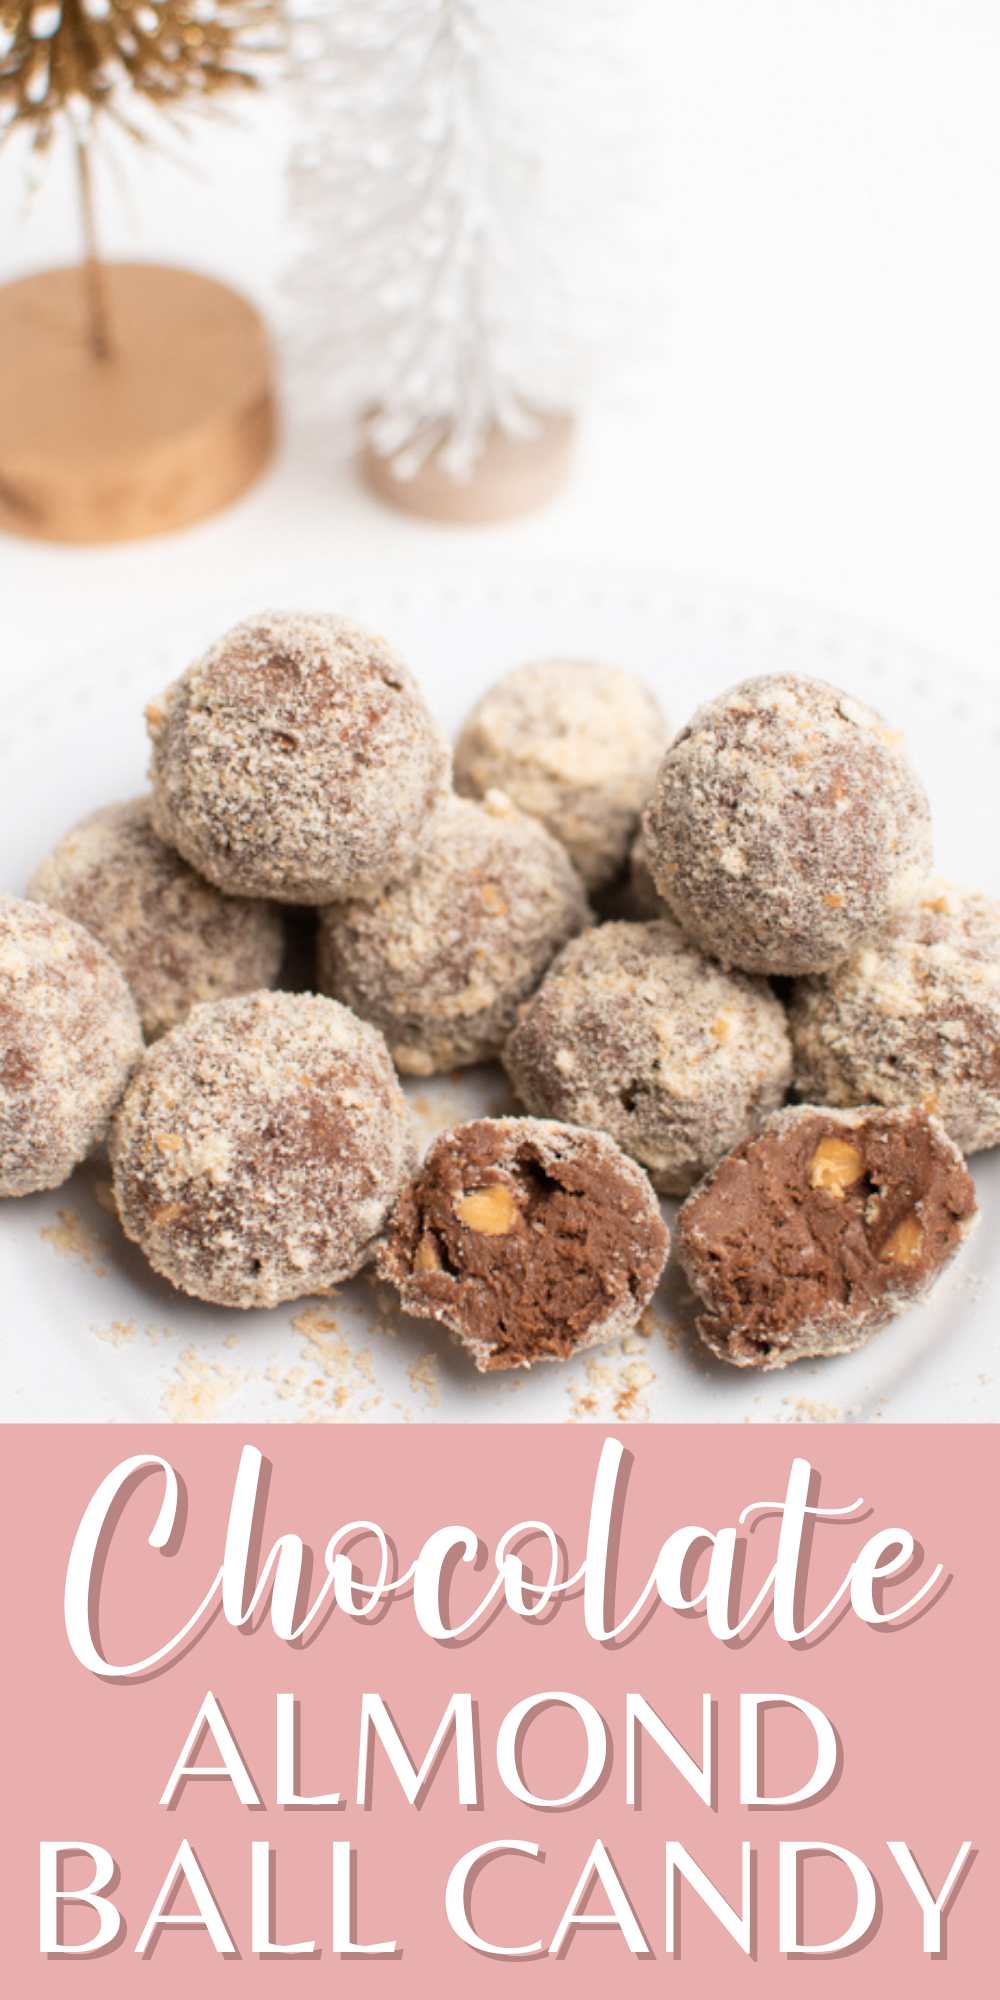 A Pinterest image with text and a plate of chocolate almond balls.